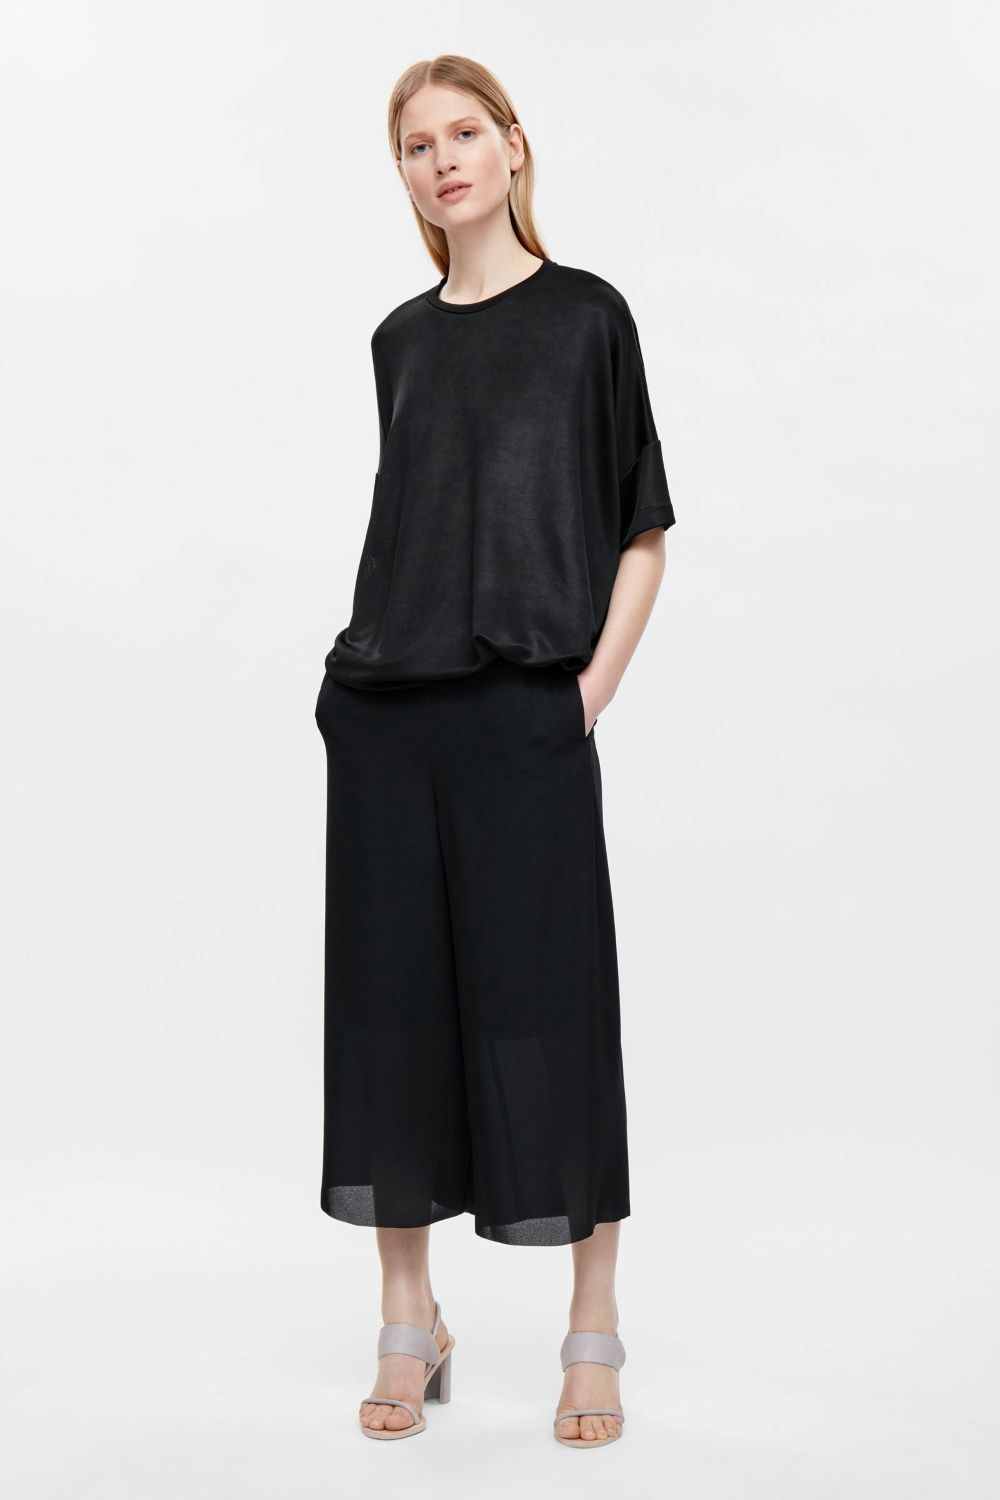 A draped design, this top is made from a sheer ribbed material with a fluid feel. An oversized fit, it has short sleeves, a neat round…